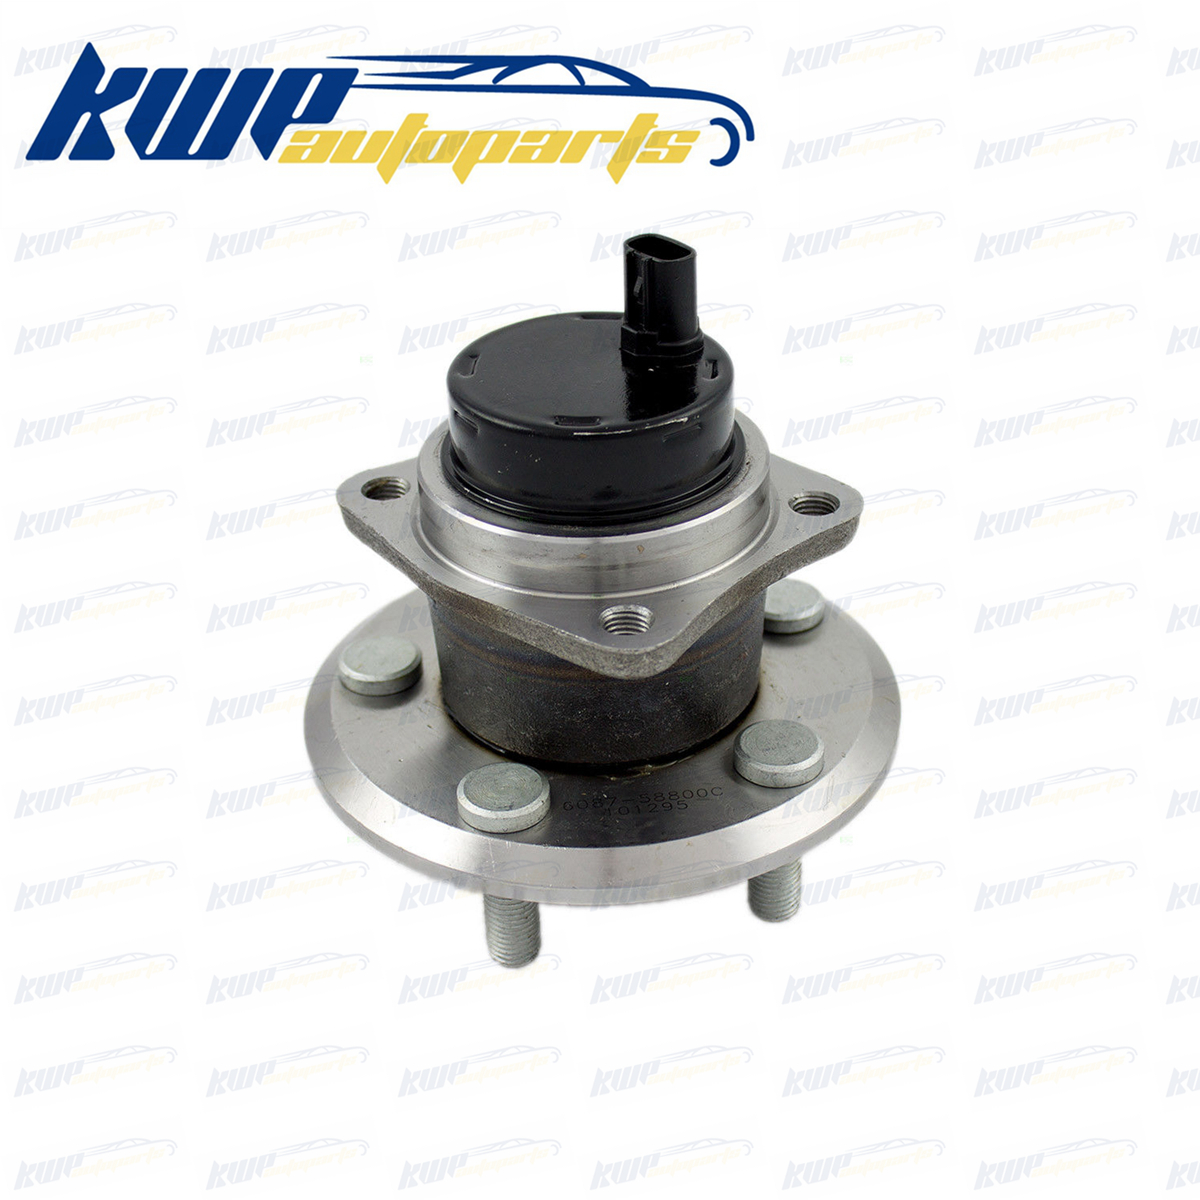 Rear Wheel Hub Bearing Assembly For Toyota Corolla Matrix Vibe Prius Celica tC #42450-47030 4pcs dac3063w 30x63x42 dac30630042 dac3063w 1 9036930044 574790 dac3063w 1cs44 hub rear wheel bearing auto bearing for toyota